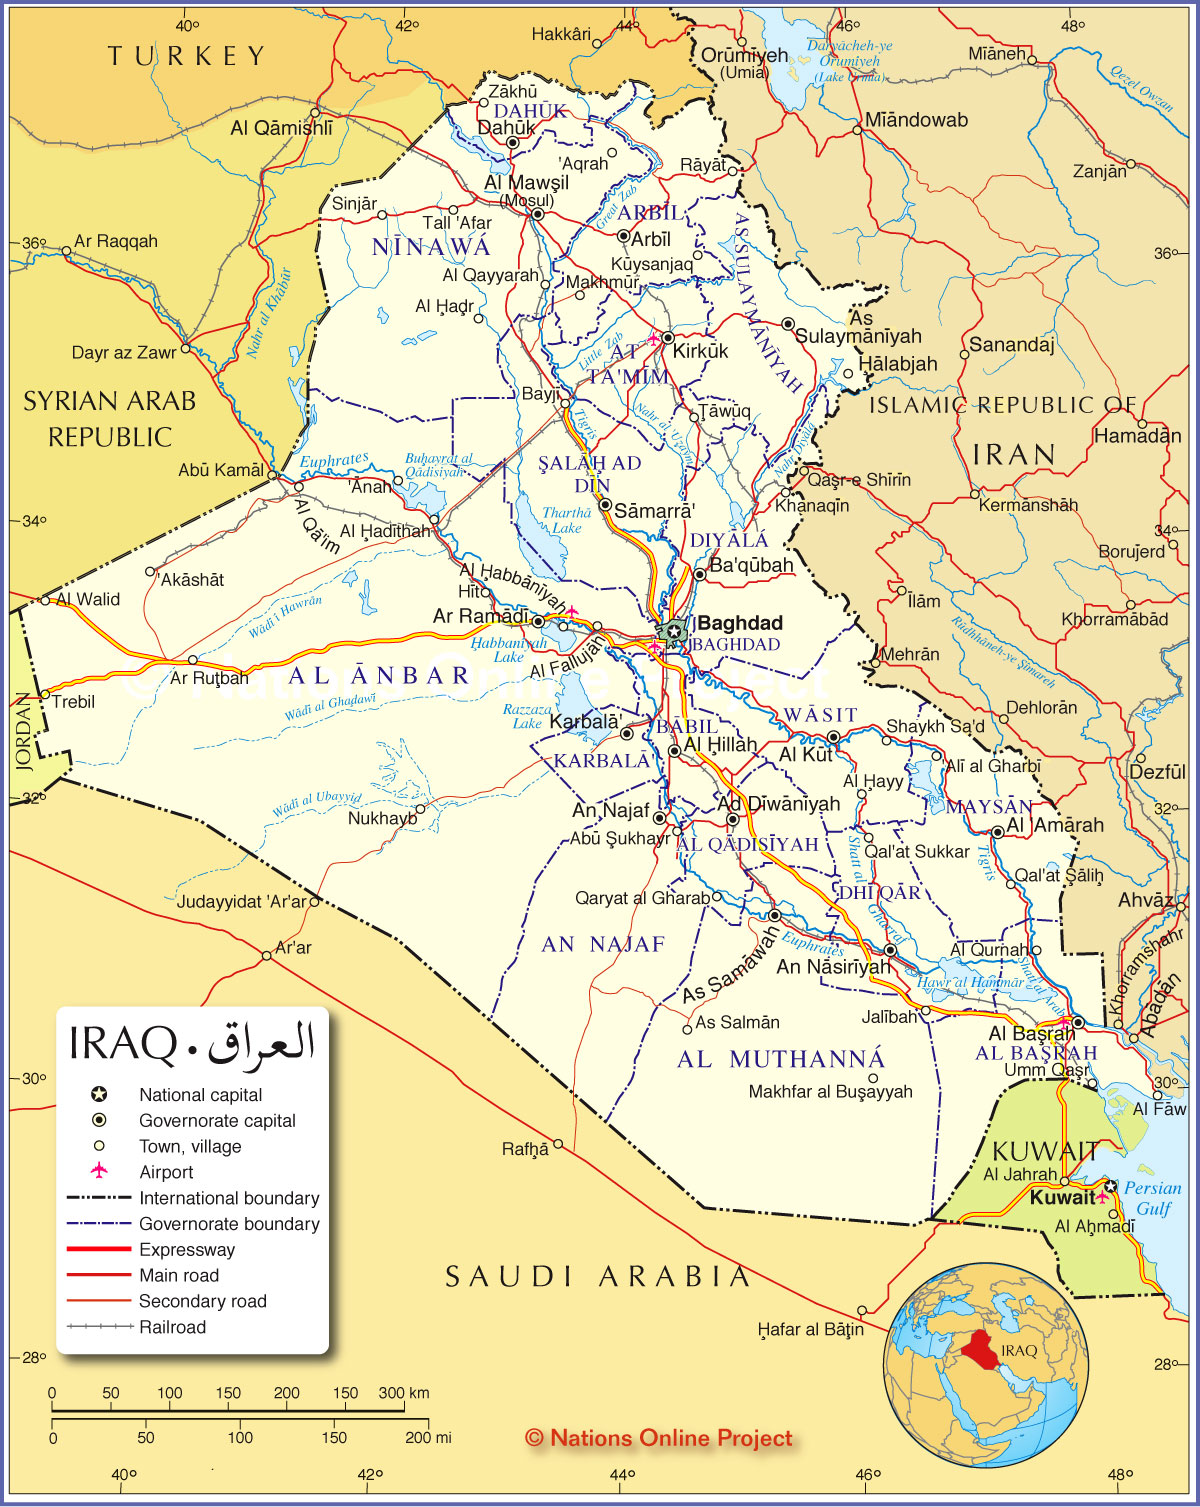 Political Map of Iraq - Nations Online Project